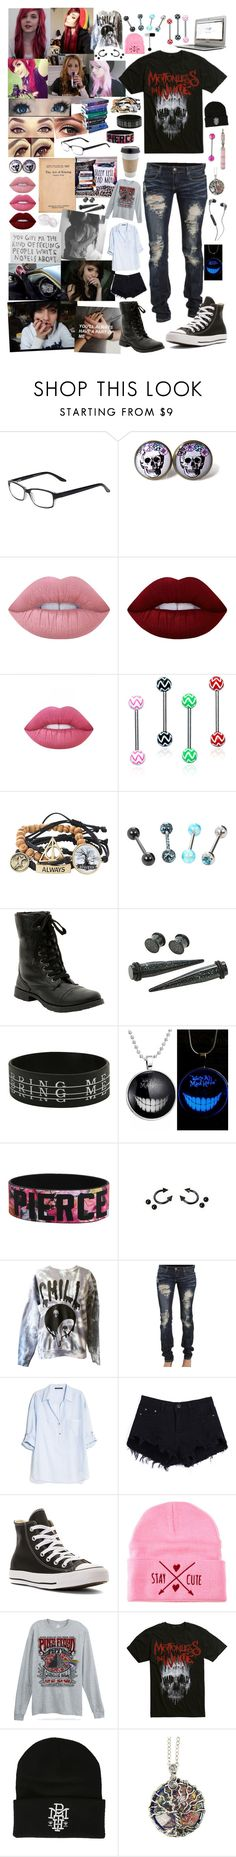 """""""College"""" by maryliz-roxie-teeter ❤ liked on Polyvore featuring cutekawaii, Lime Crime, Samsung, OUTRAGE, MANGO, Converse, Stay Cute, Floyd and Skullcandy"""